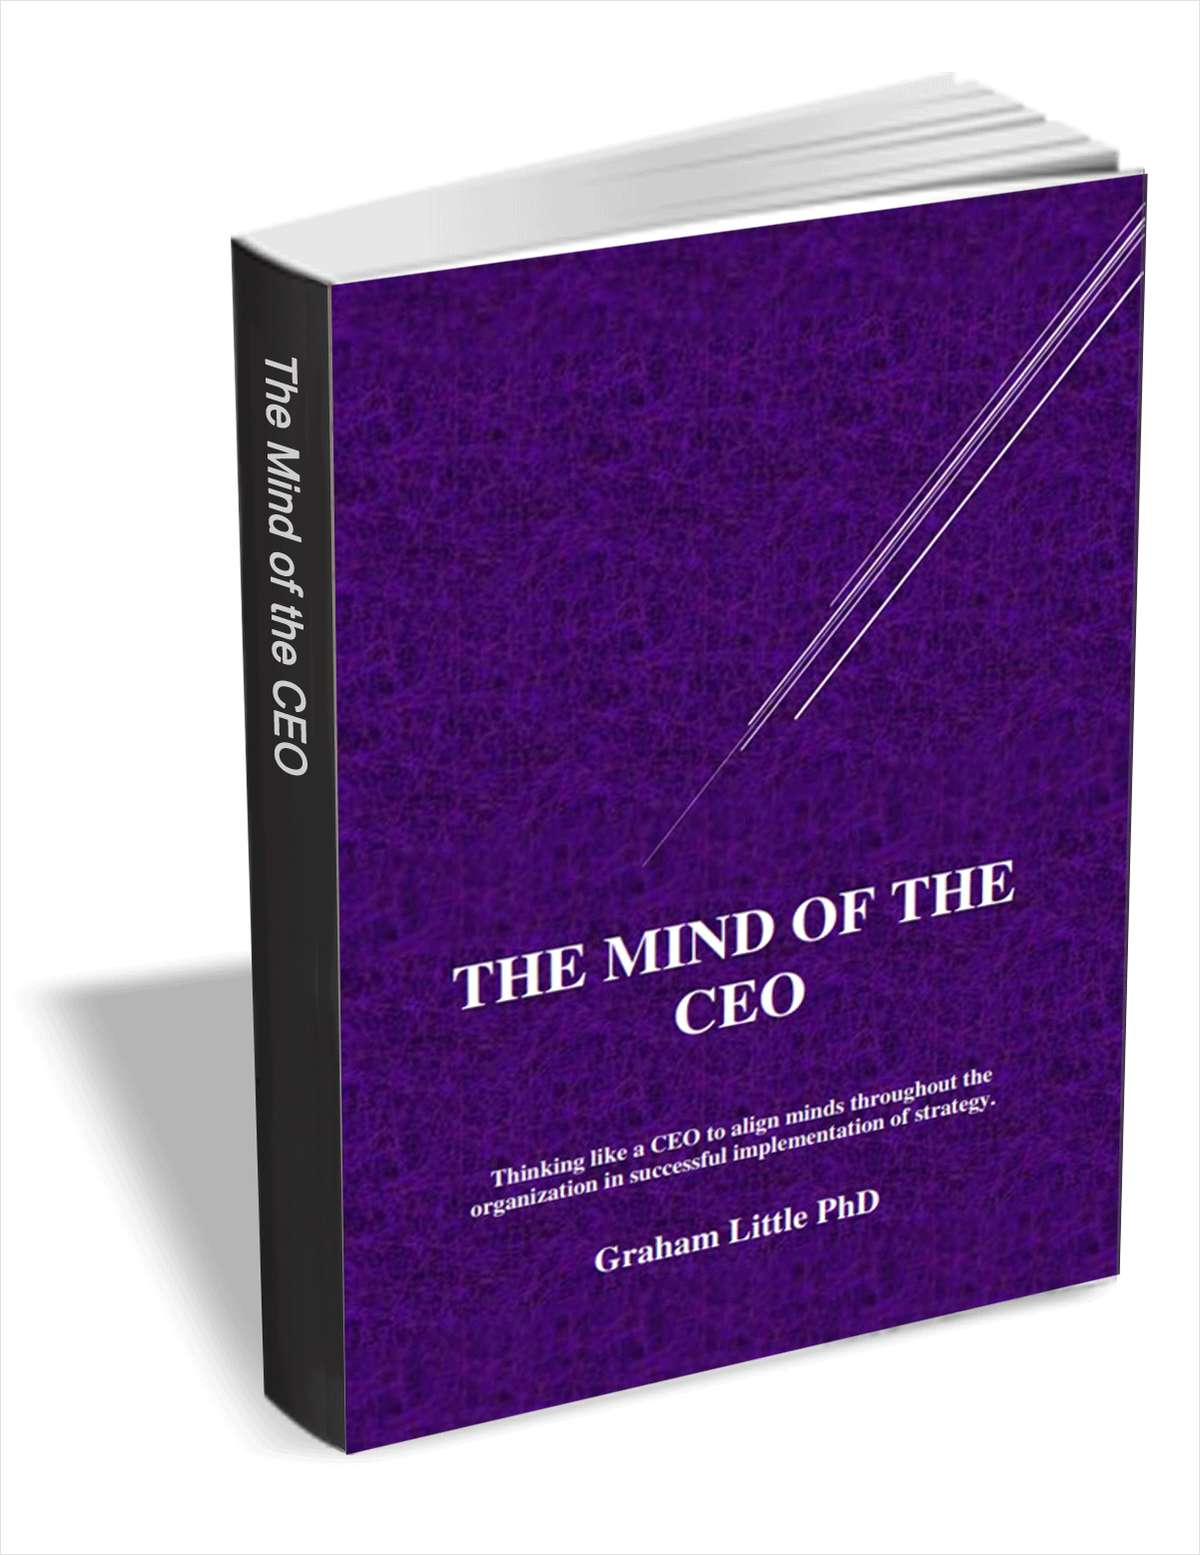 The Mind of the CEO - Thinking like a CEO to Align Minds Throughout the Organization in Successful Implementation of Strategy